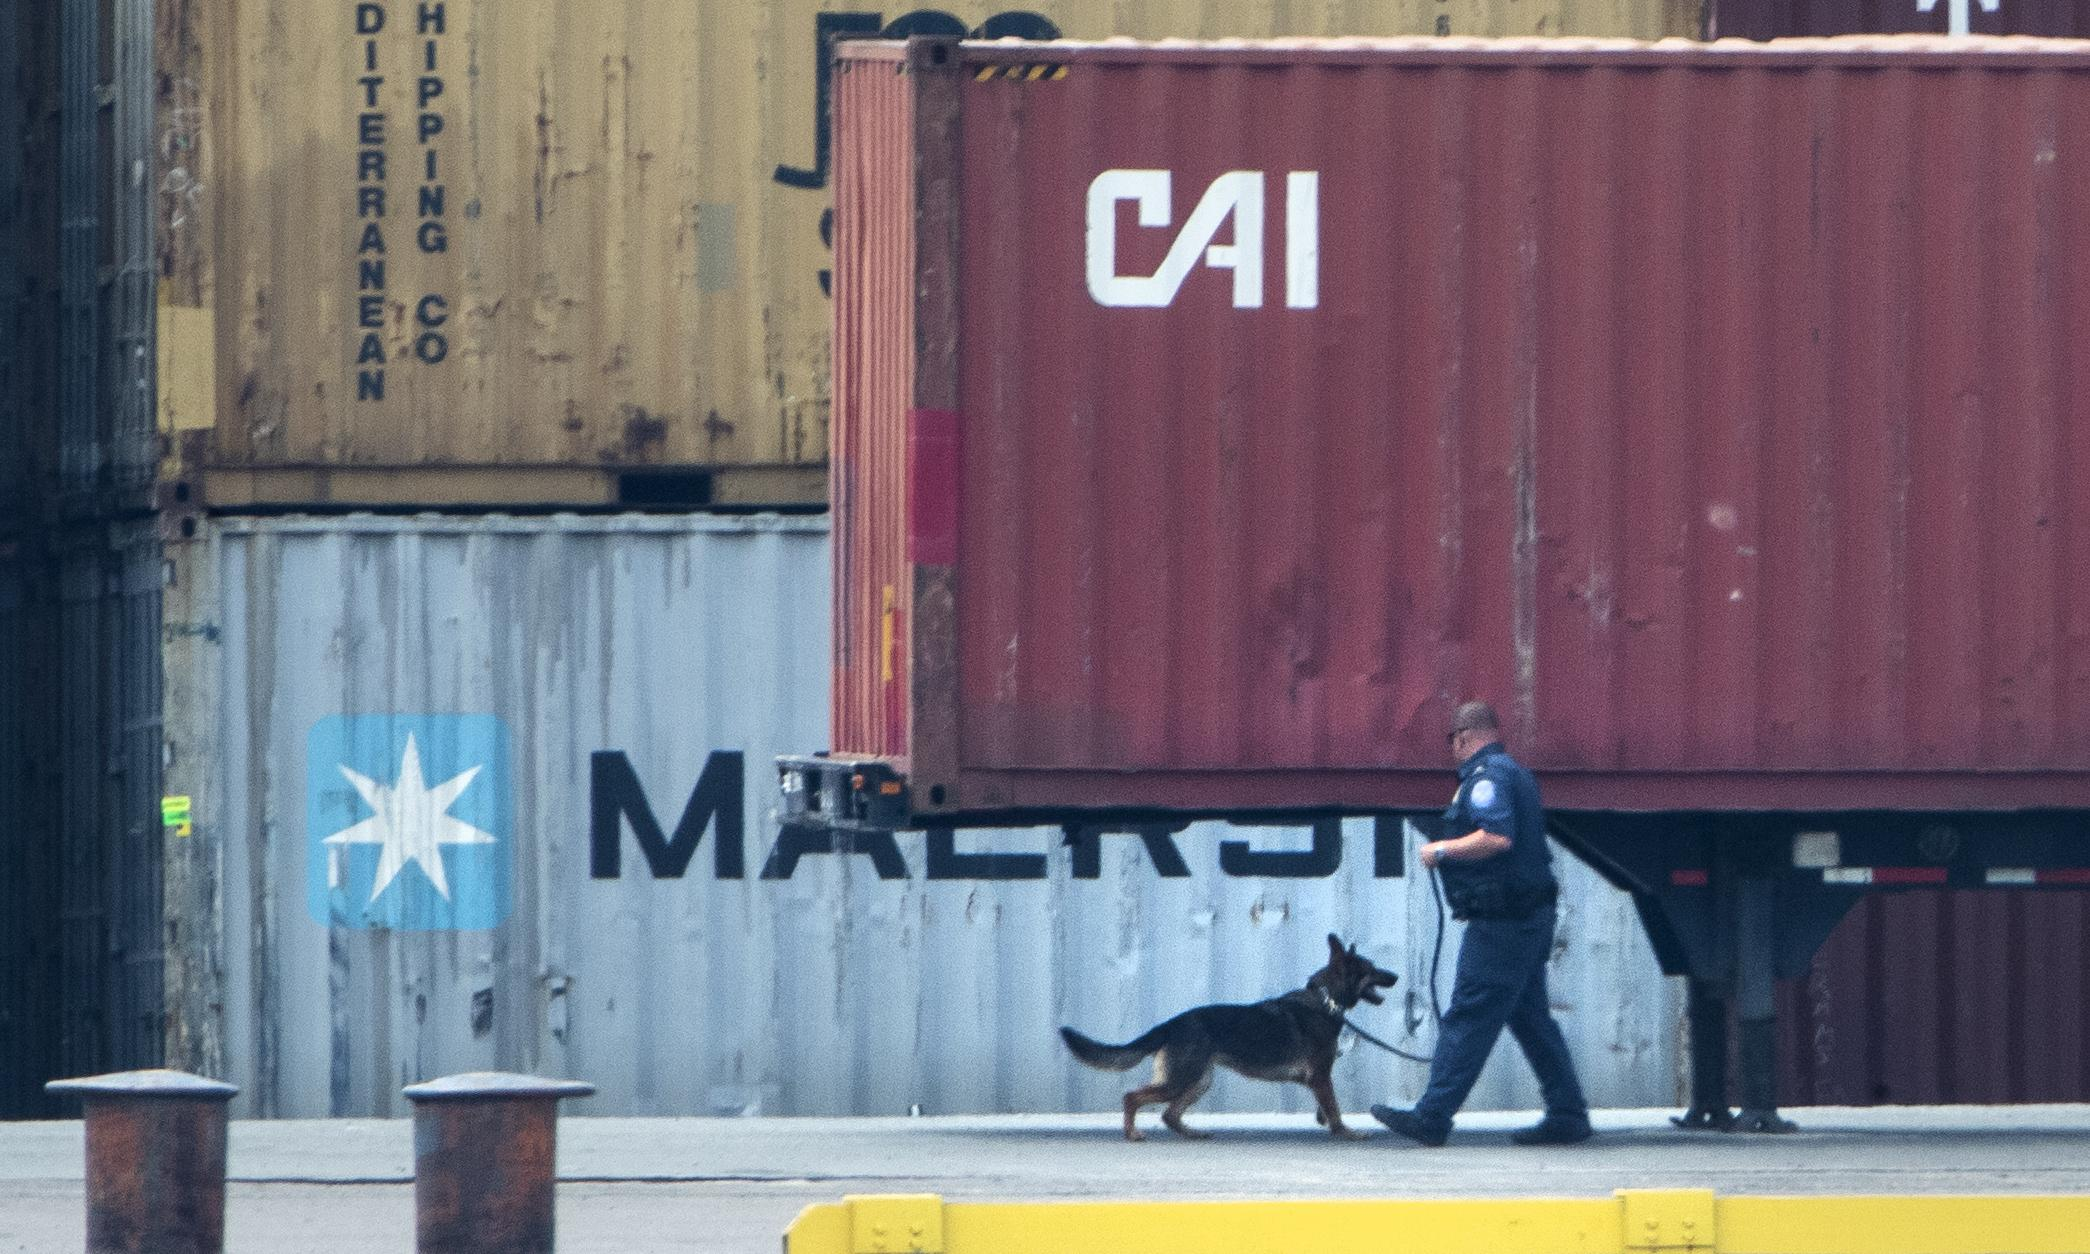 More than $1bn worth of cocaine seized from ship at Philadelphia port